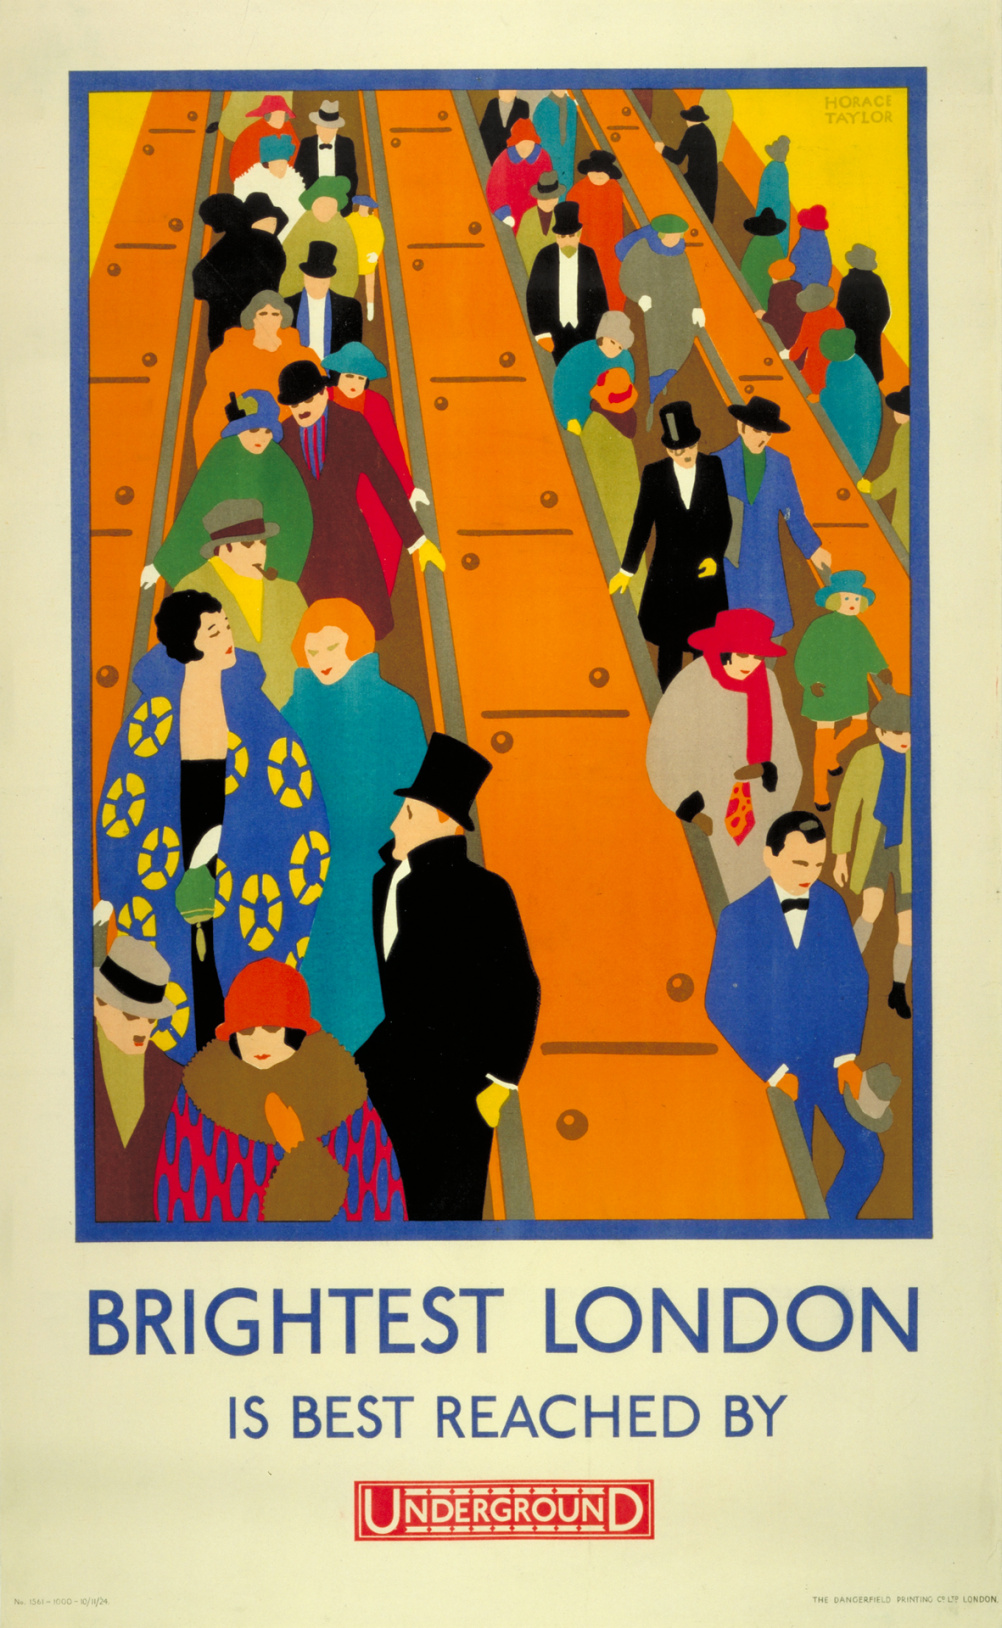 1924 poster by Horace Taylor